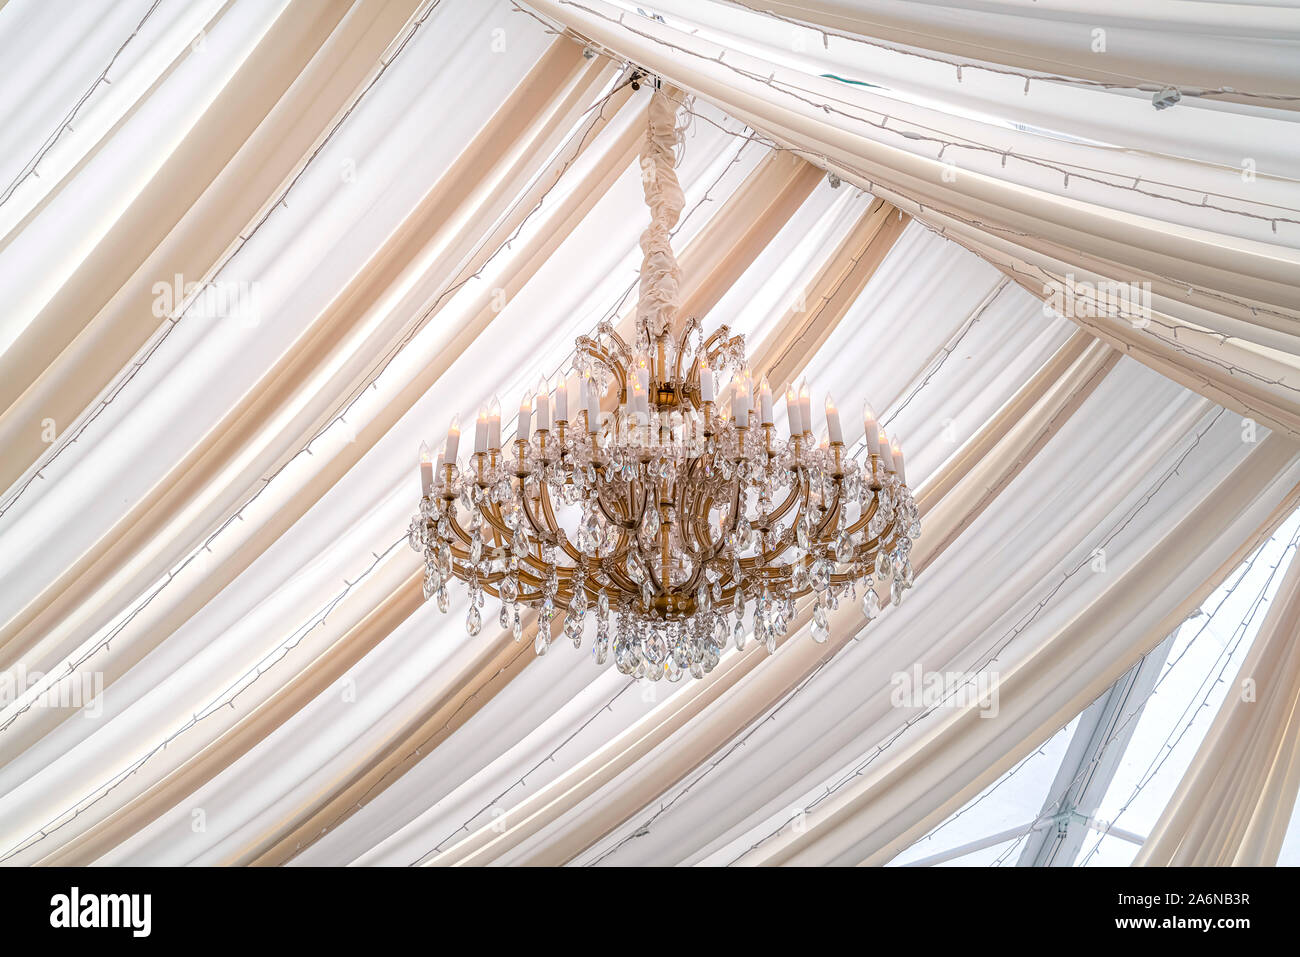 Beautiful Chandelier With Crystals And Faux Candles At A Wedding Venue Stock Photo Alamy